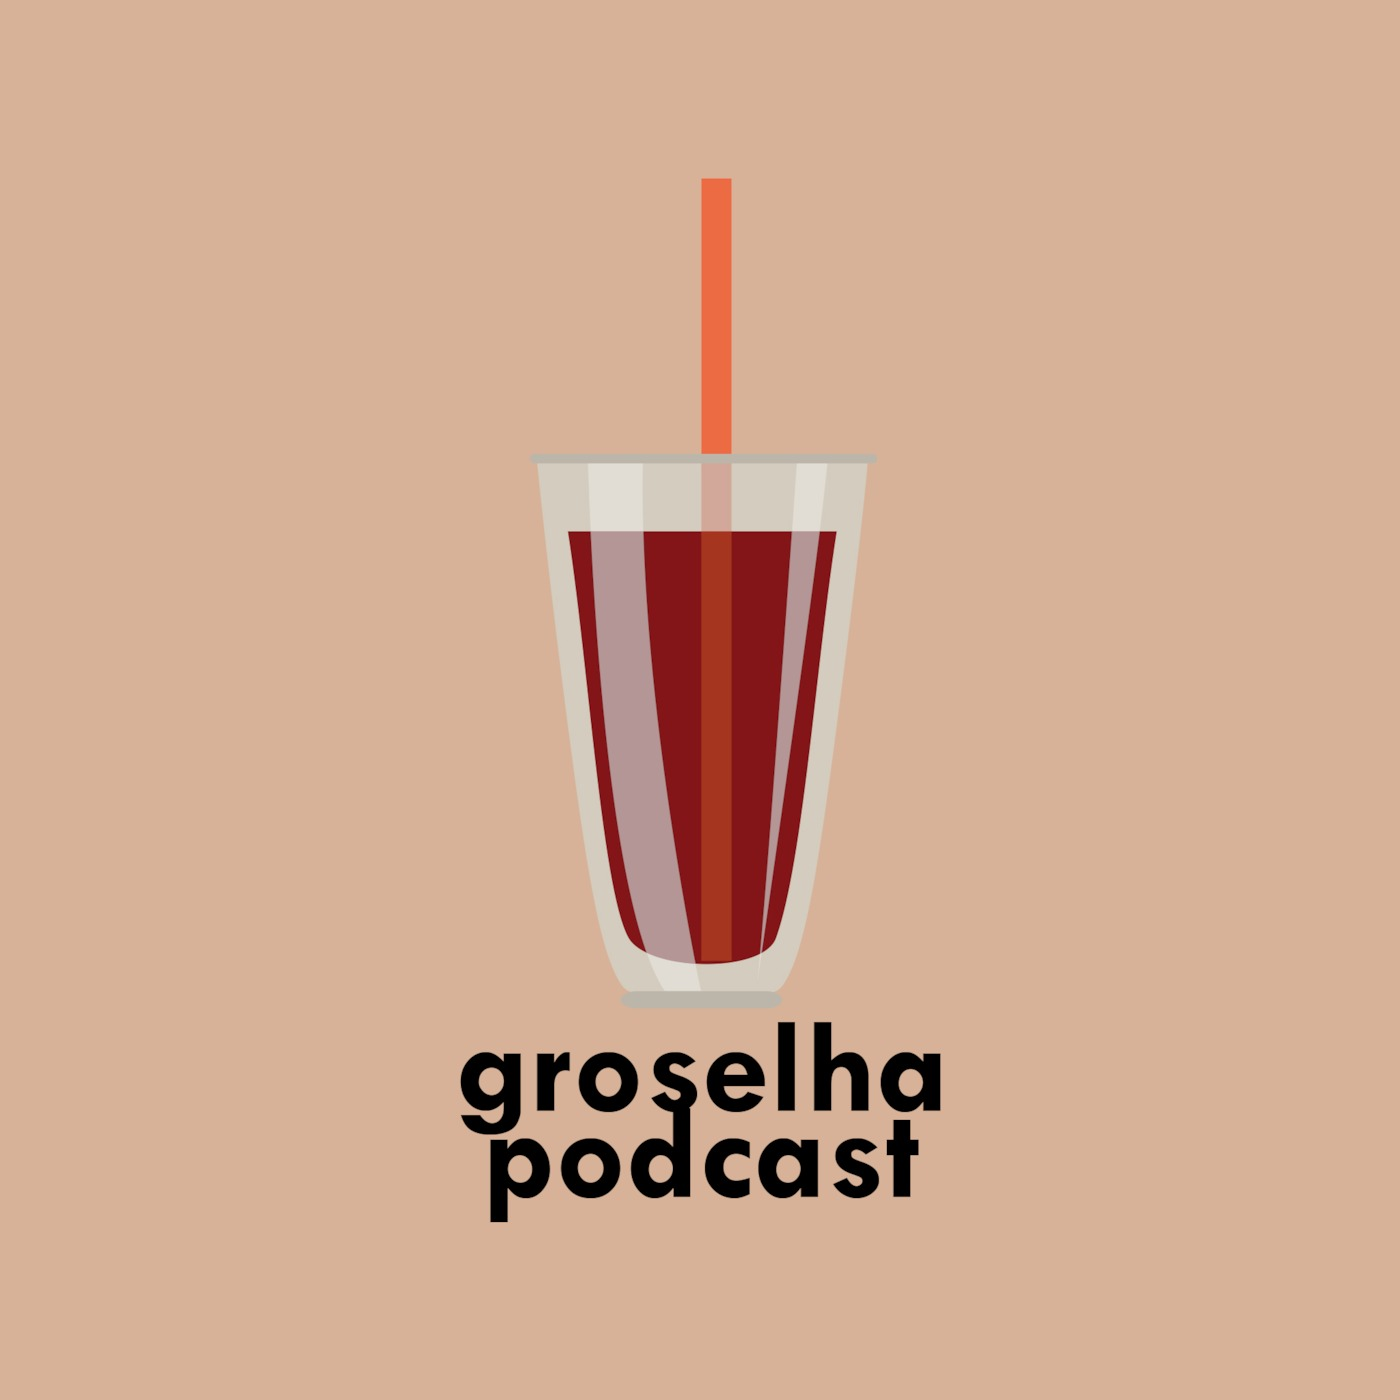 Groselha Podcast